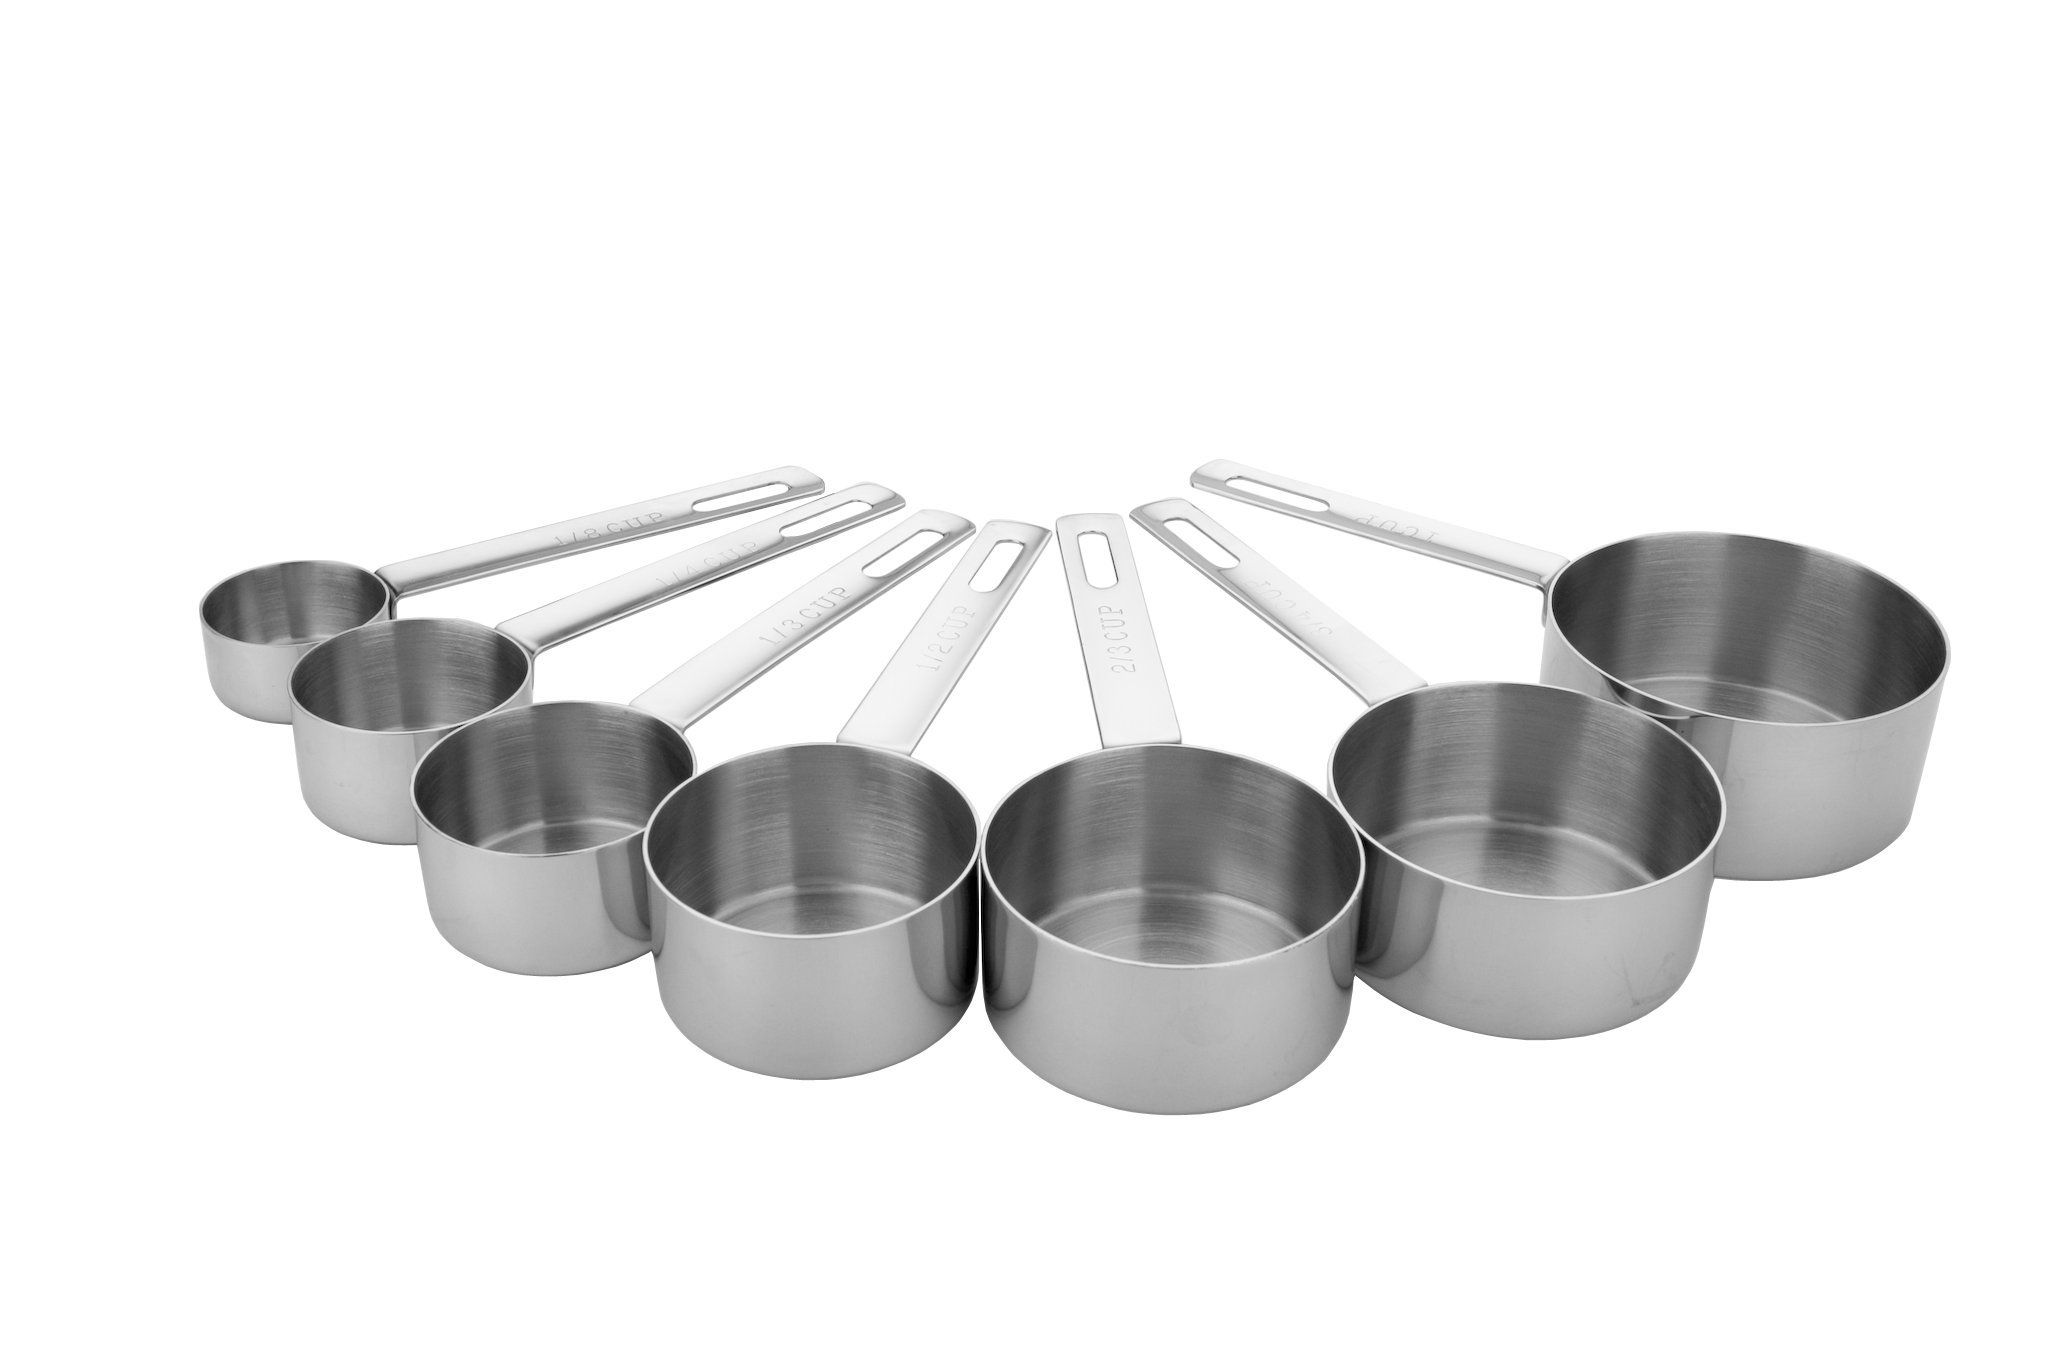 MIU France 7-Piece Stainless Steel Measuring Cup Set by MIU France